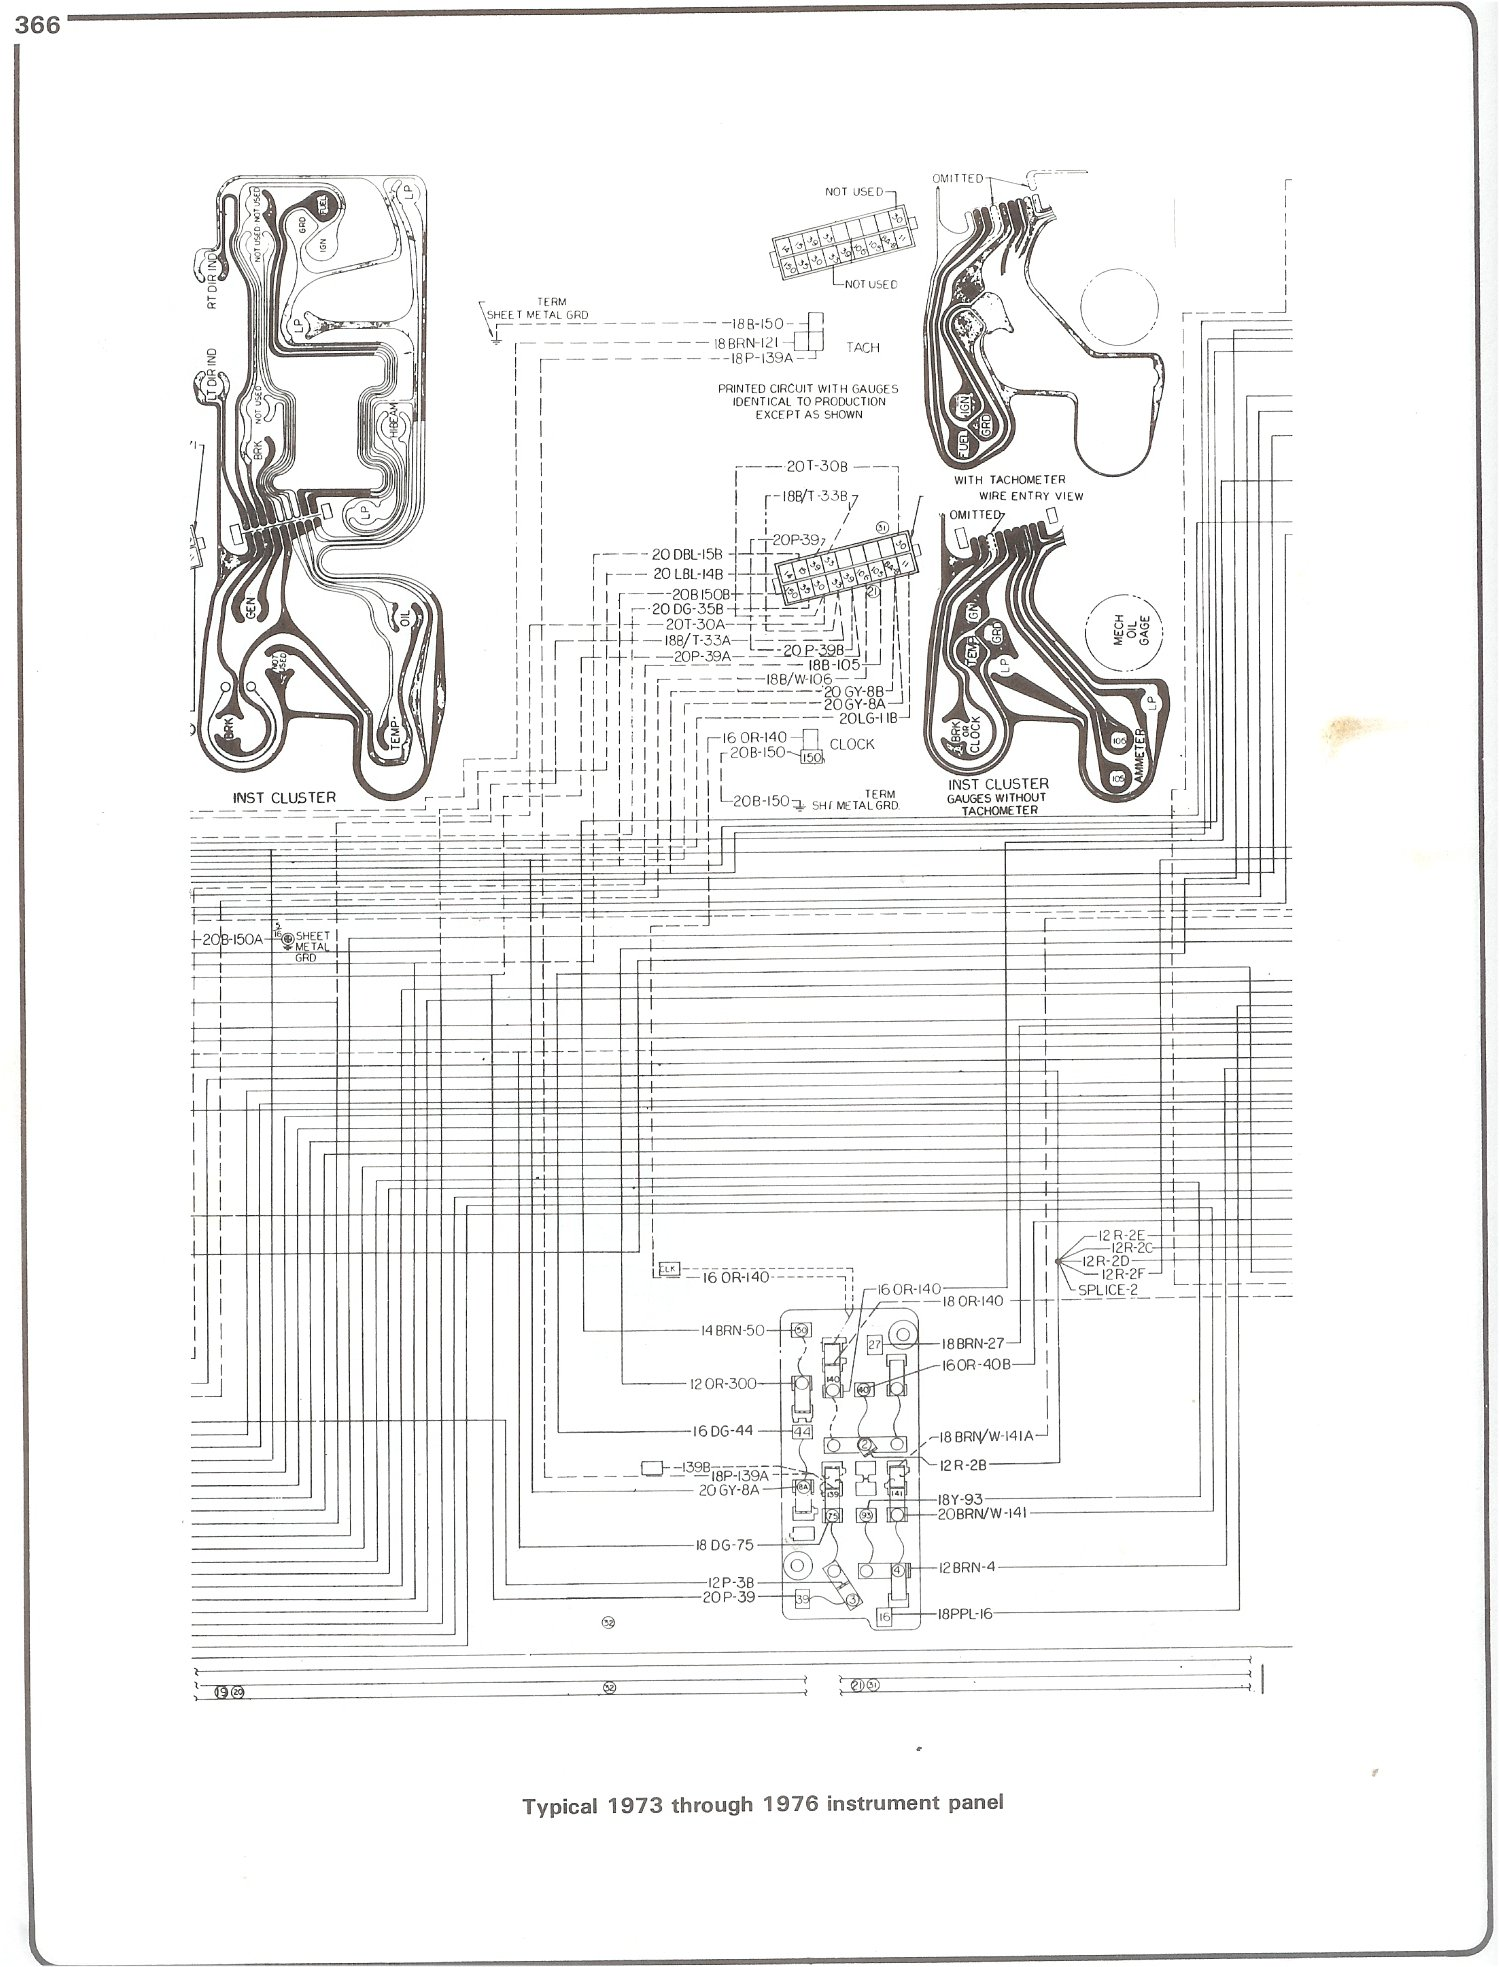 73 76_instrument complete 73 87 wiring diagrams 1988 chevy truck wiring diagrams at soozxer.org